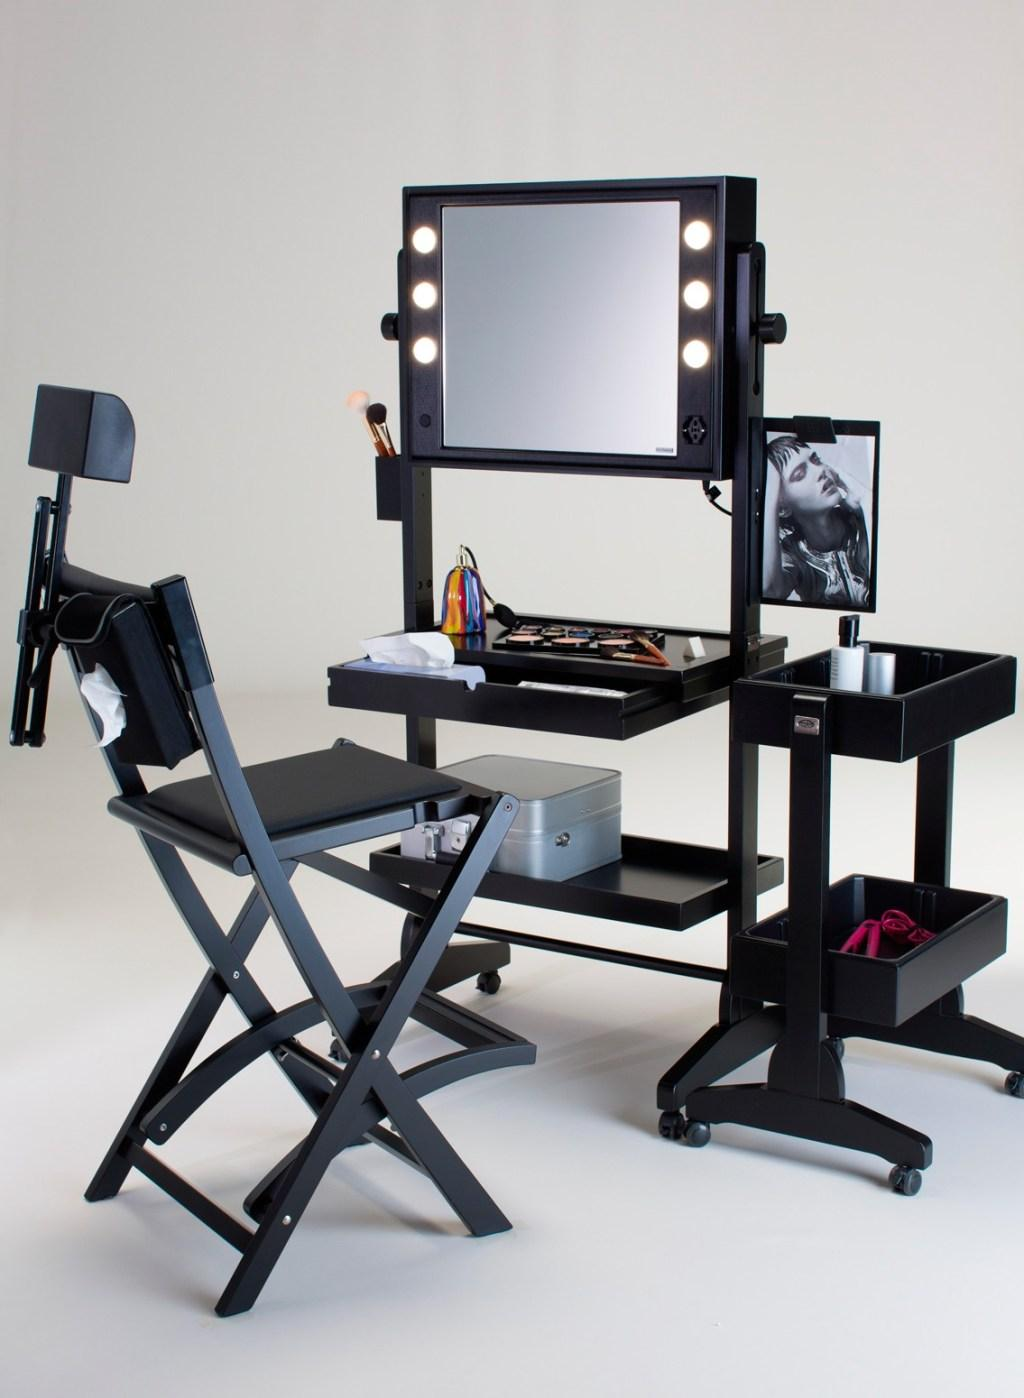 Makeup table: 60 ideas to decorate and organize 35